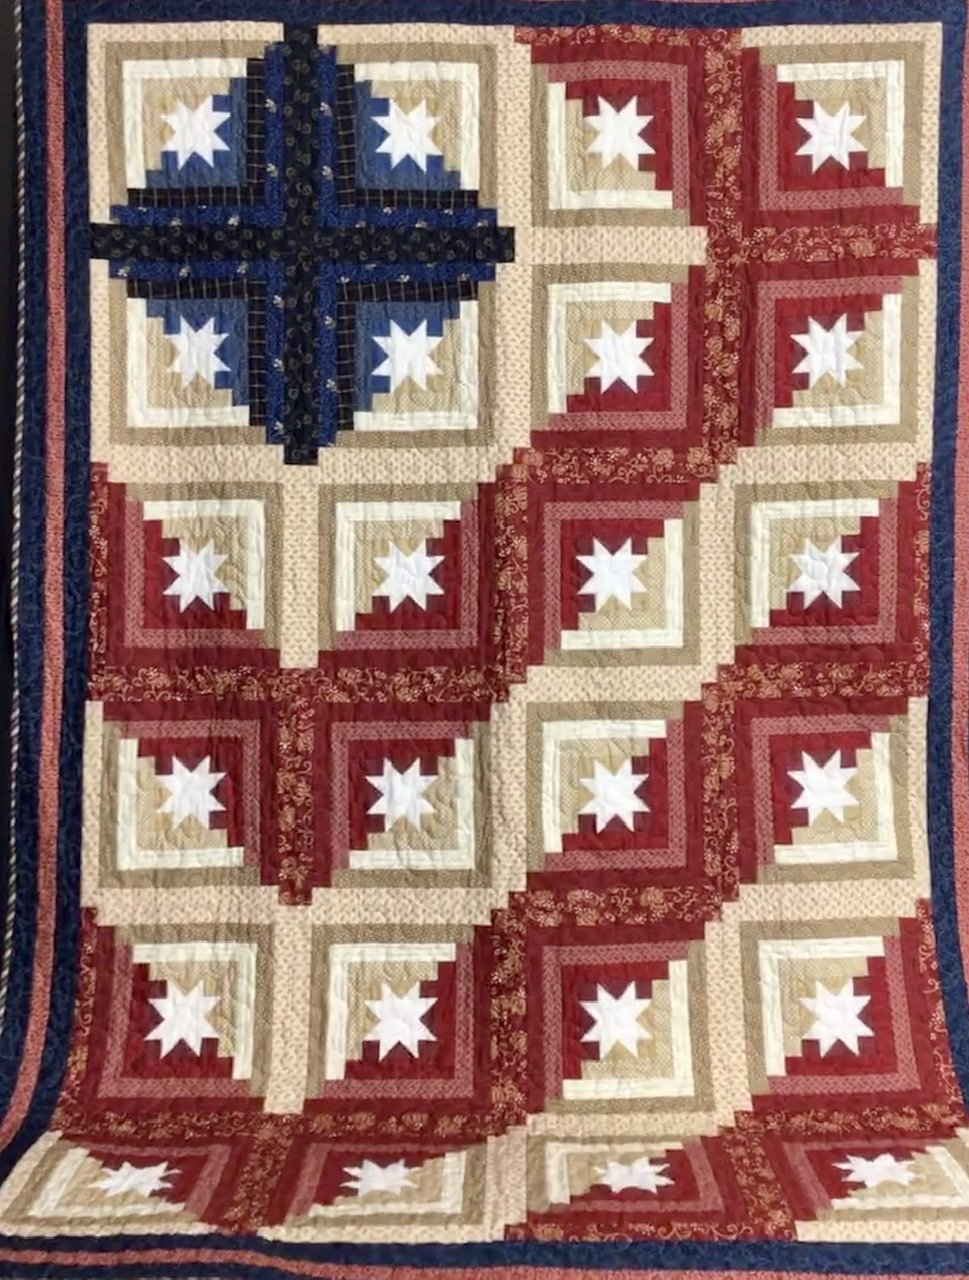 Log Cabin Americana pattern